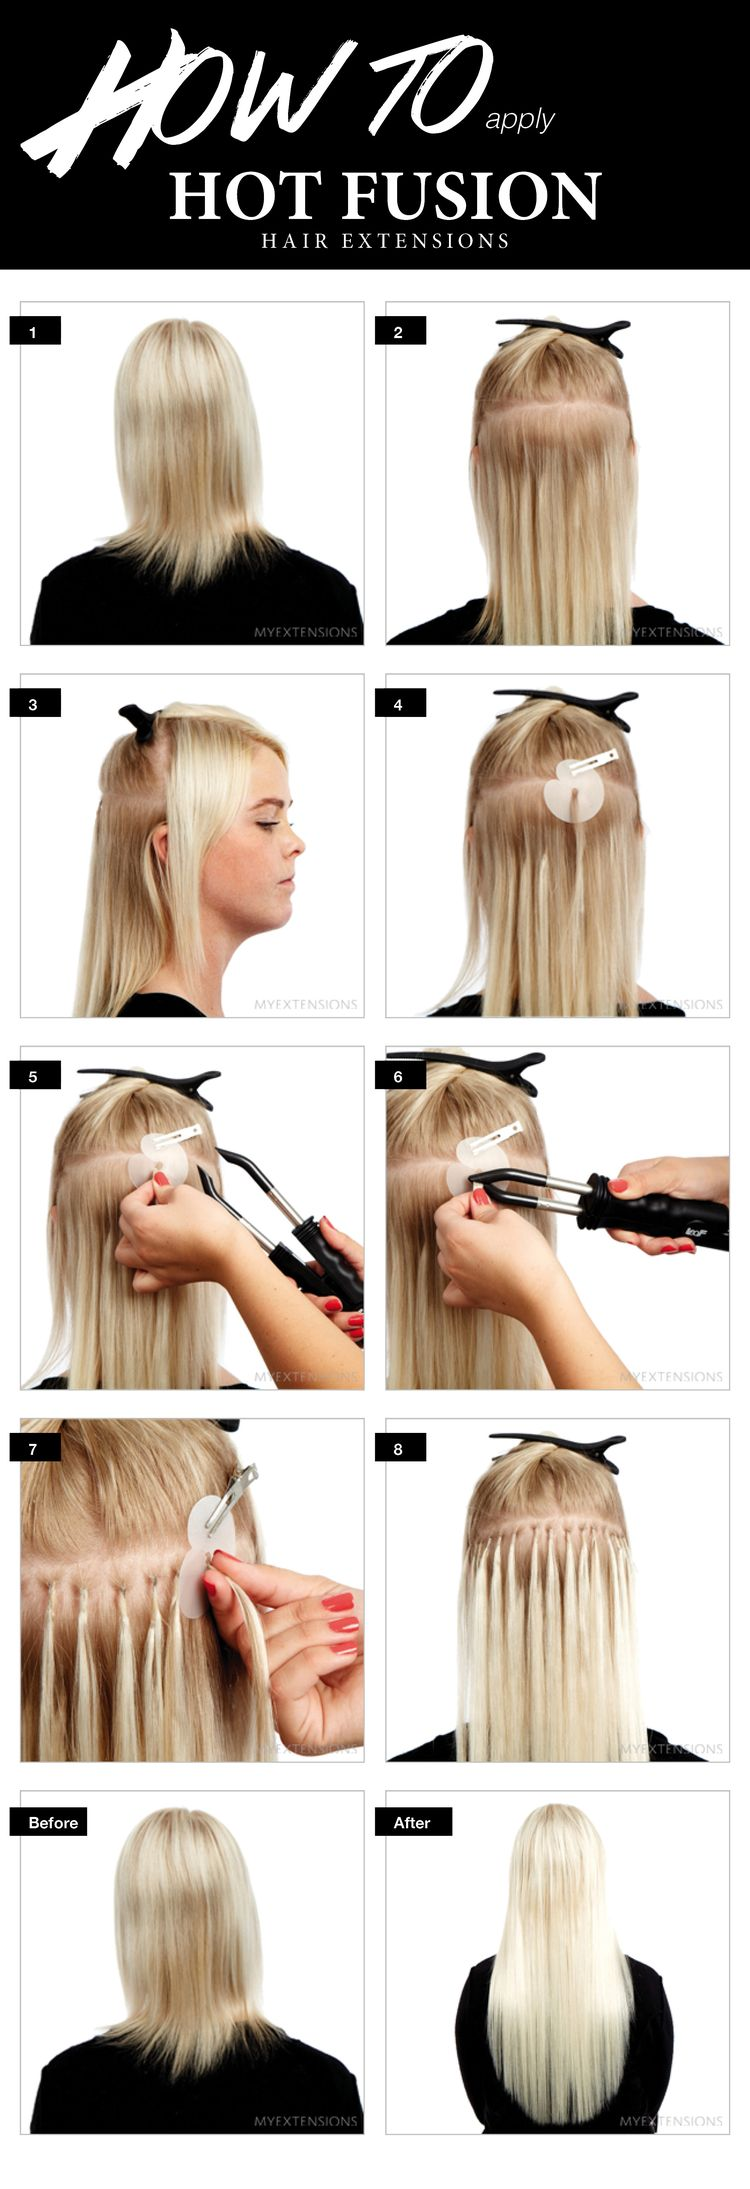 how to put in clip in hair extensions - step by step